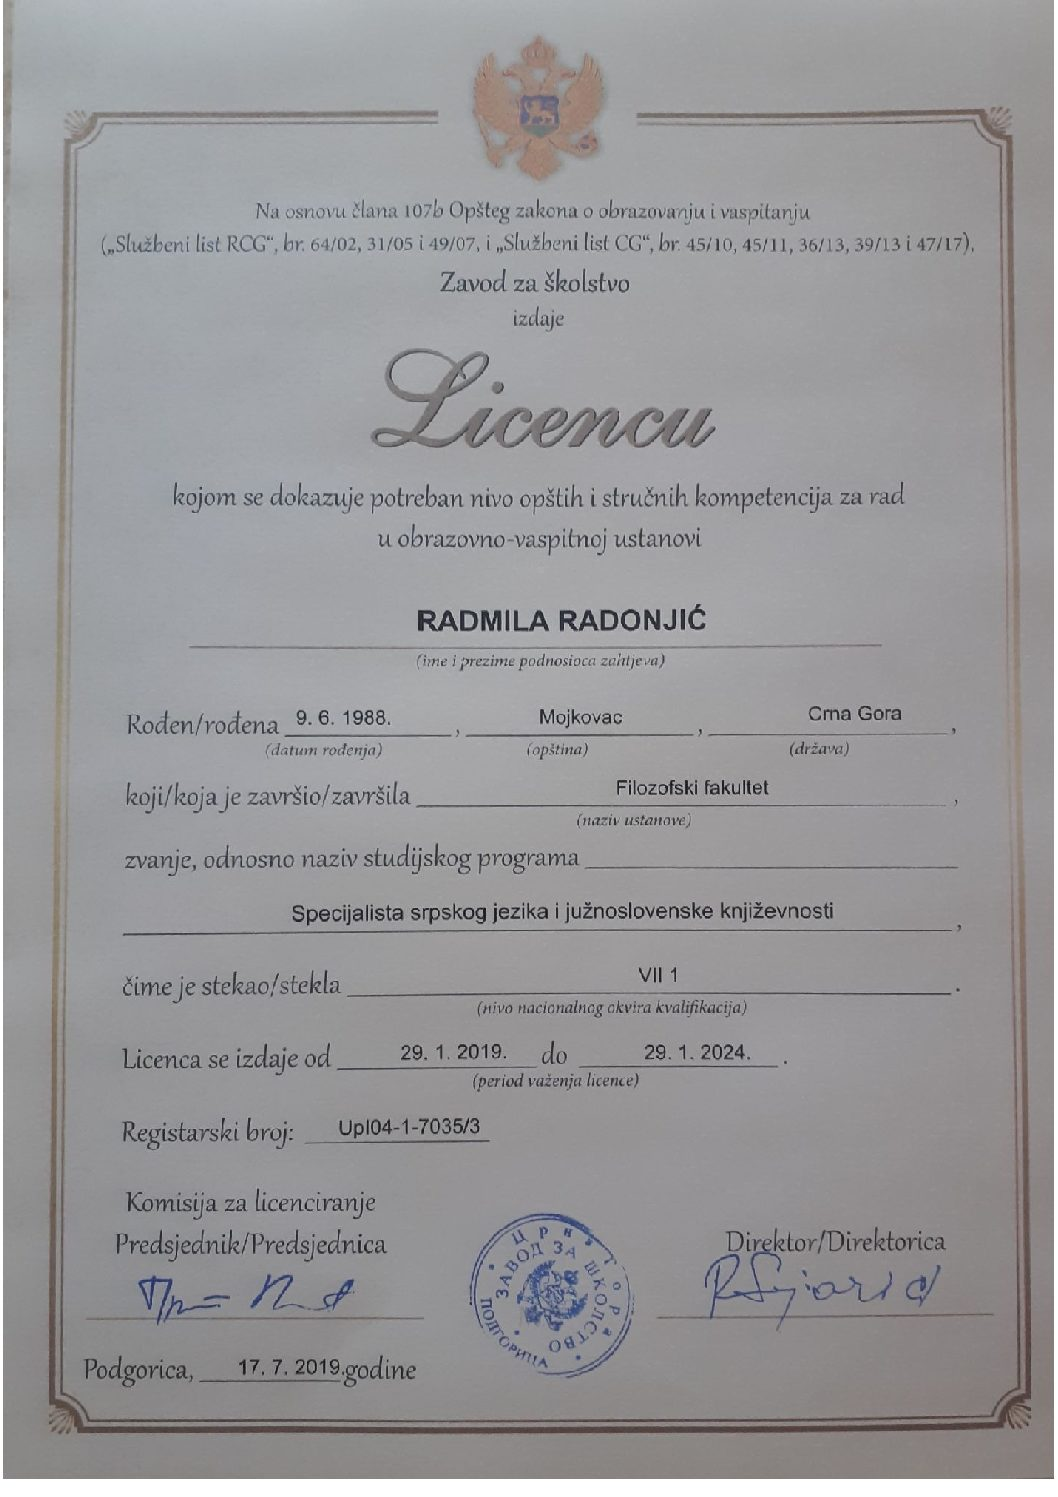 Teaching licence